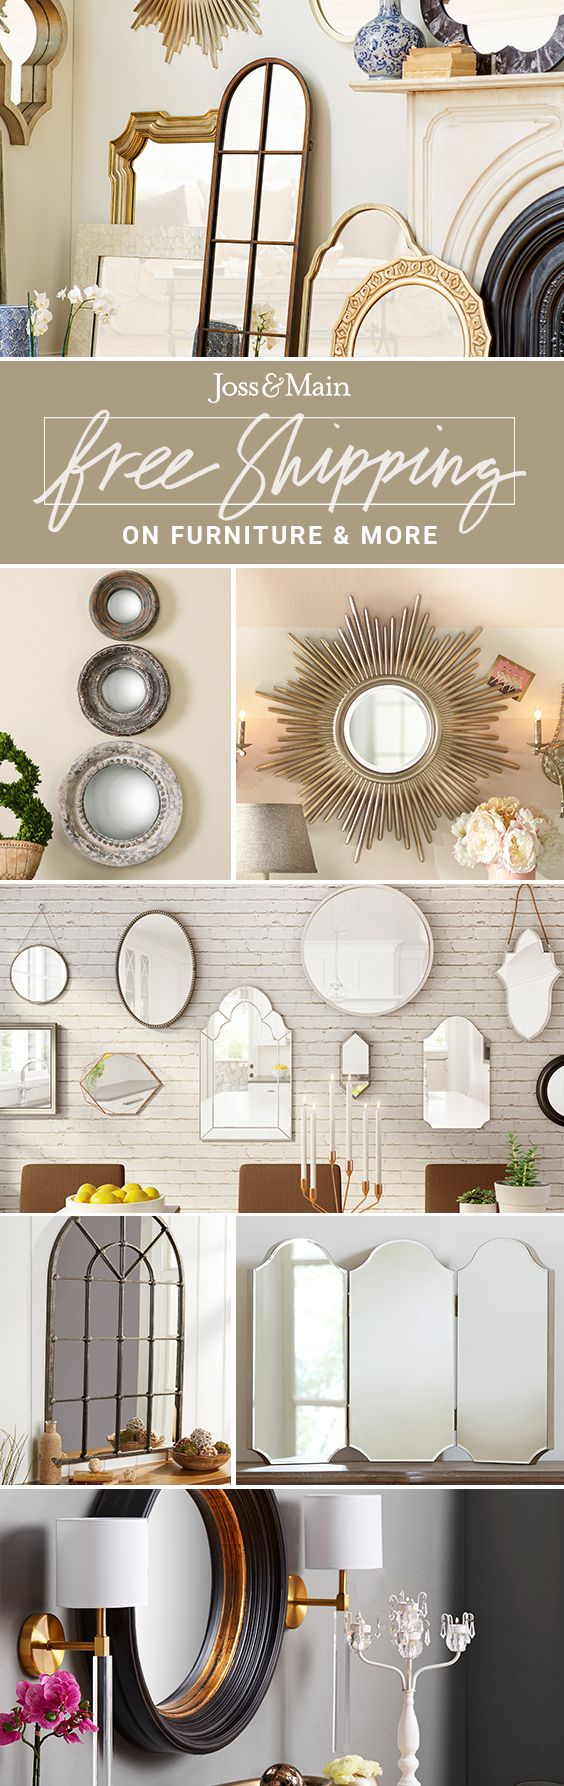 Mirrors at jossandmain.com! Sign up to find out more about FREE SHIPPING on all orders over $49!